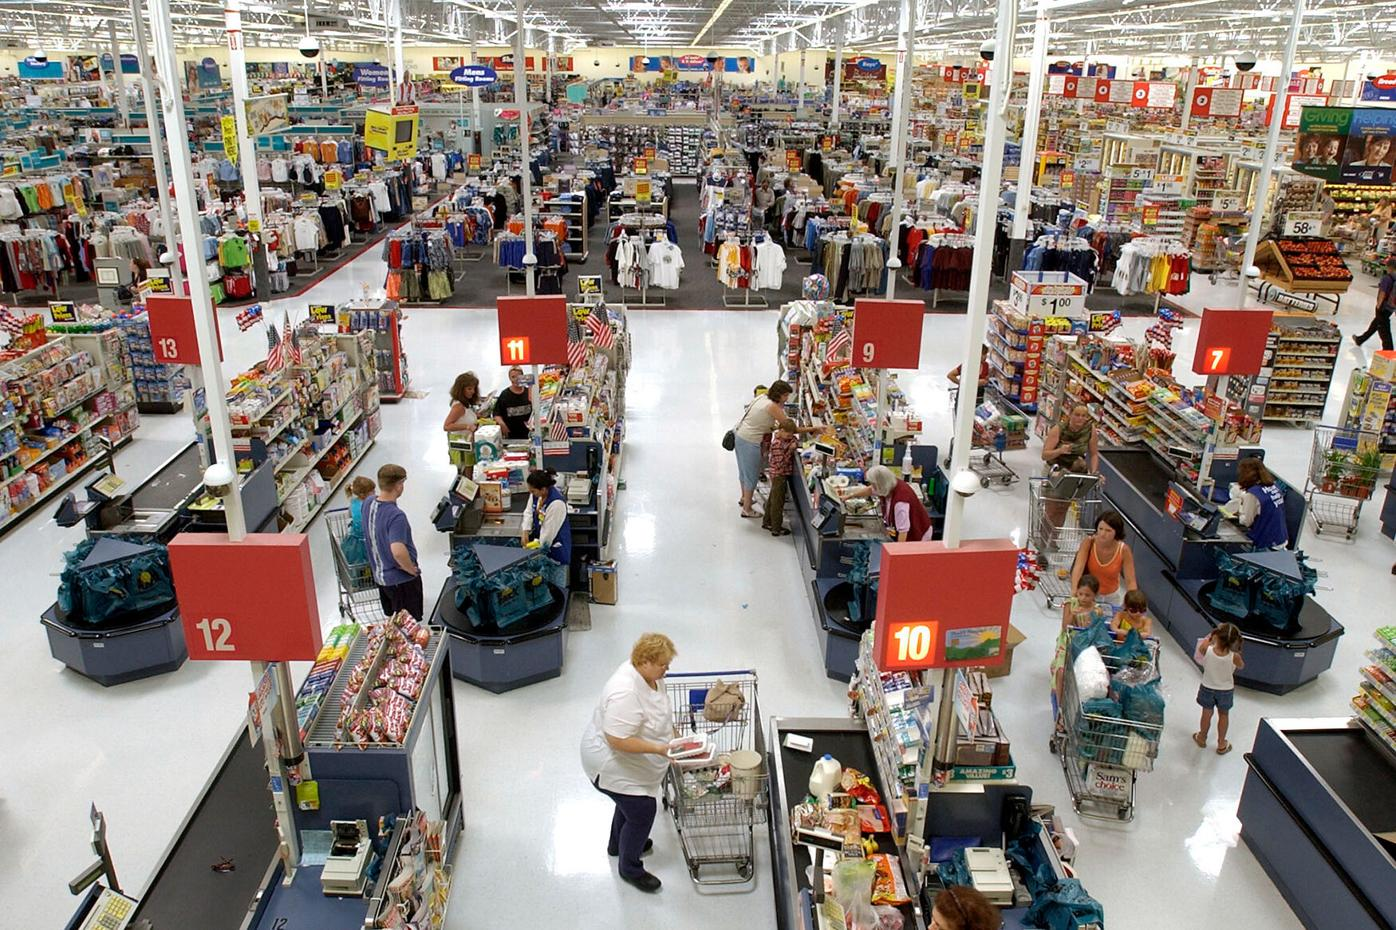 Shoppers check out at the counters of the Wal-Mart supercenter